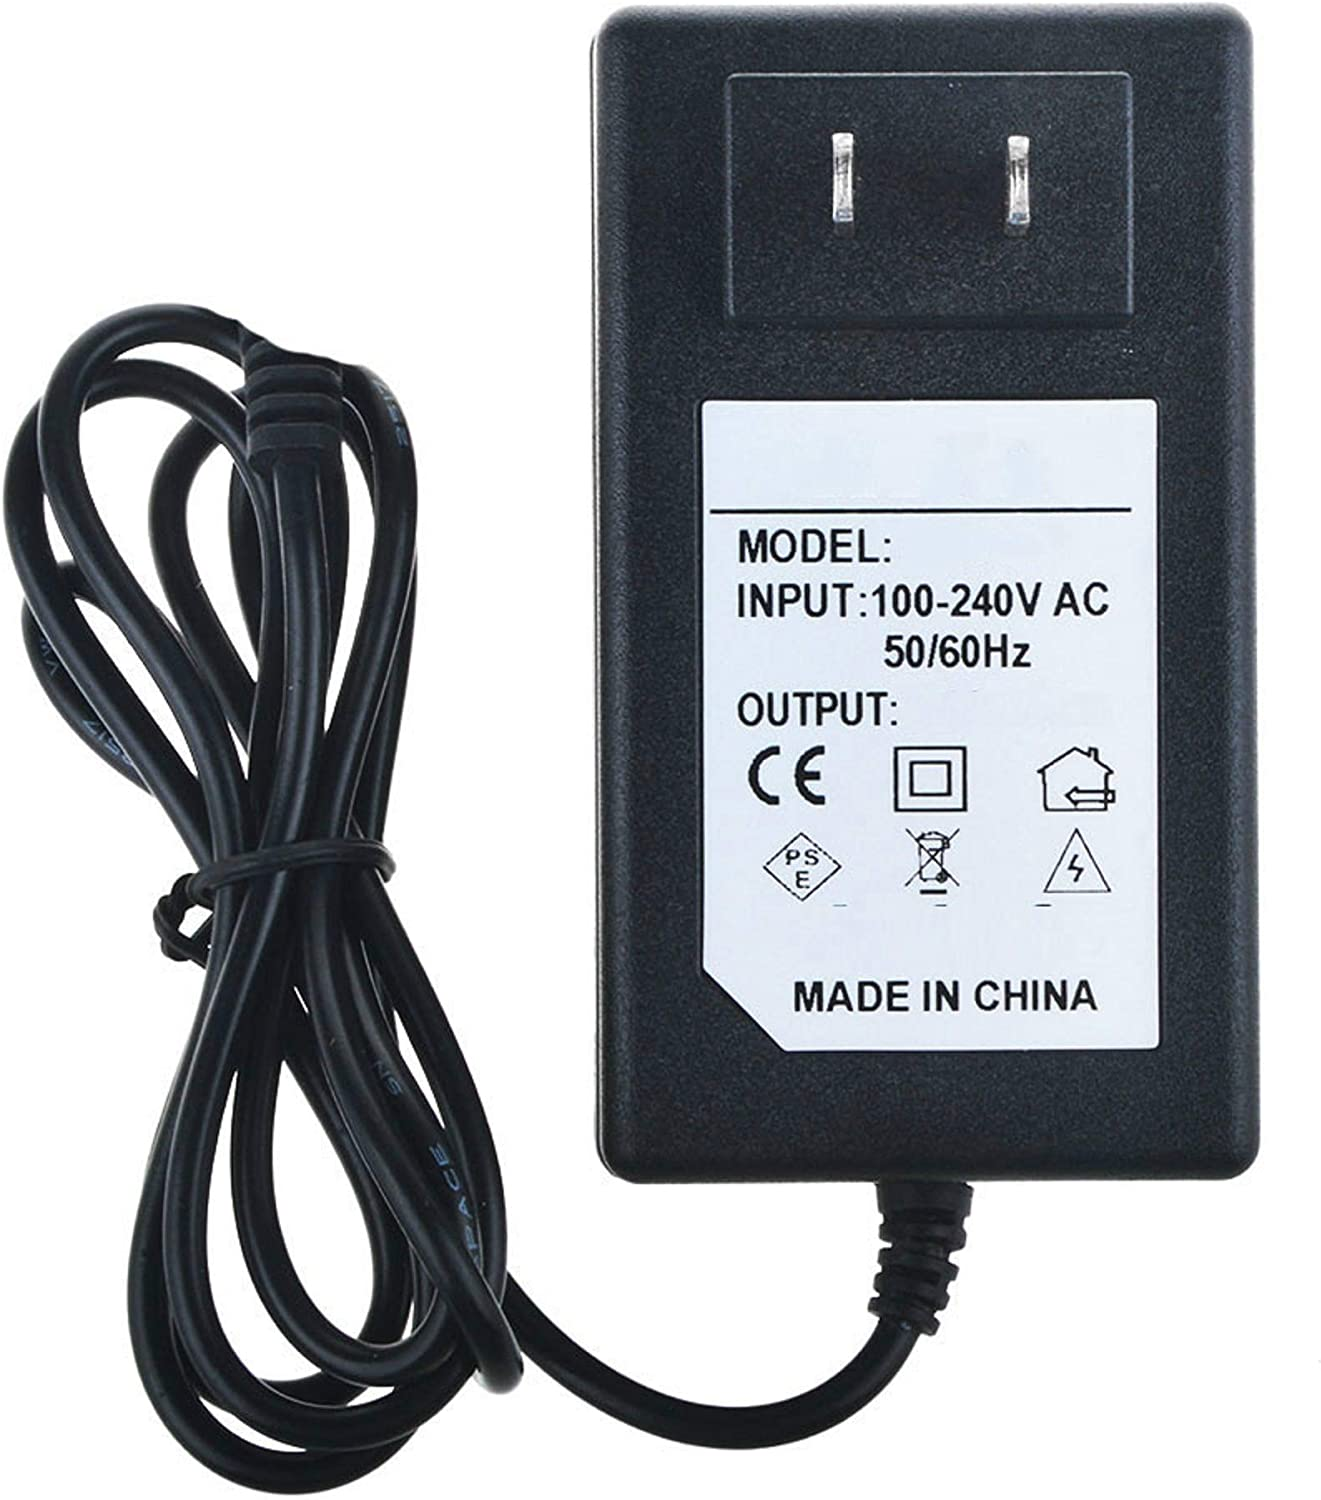 Digipartspower AC Adapter for Canon Imageformula DR-C125 DR-C125W Document Scanner Power Supply